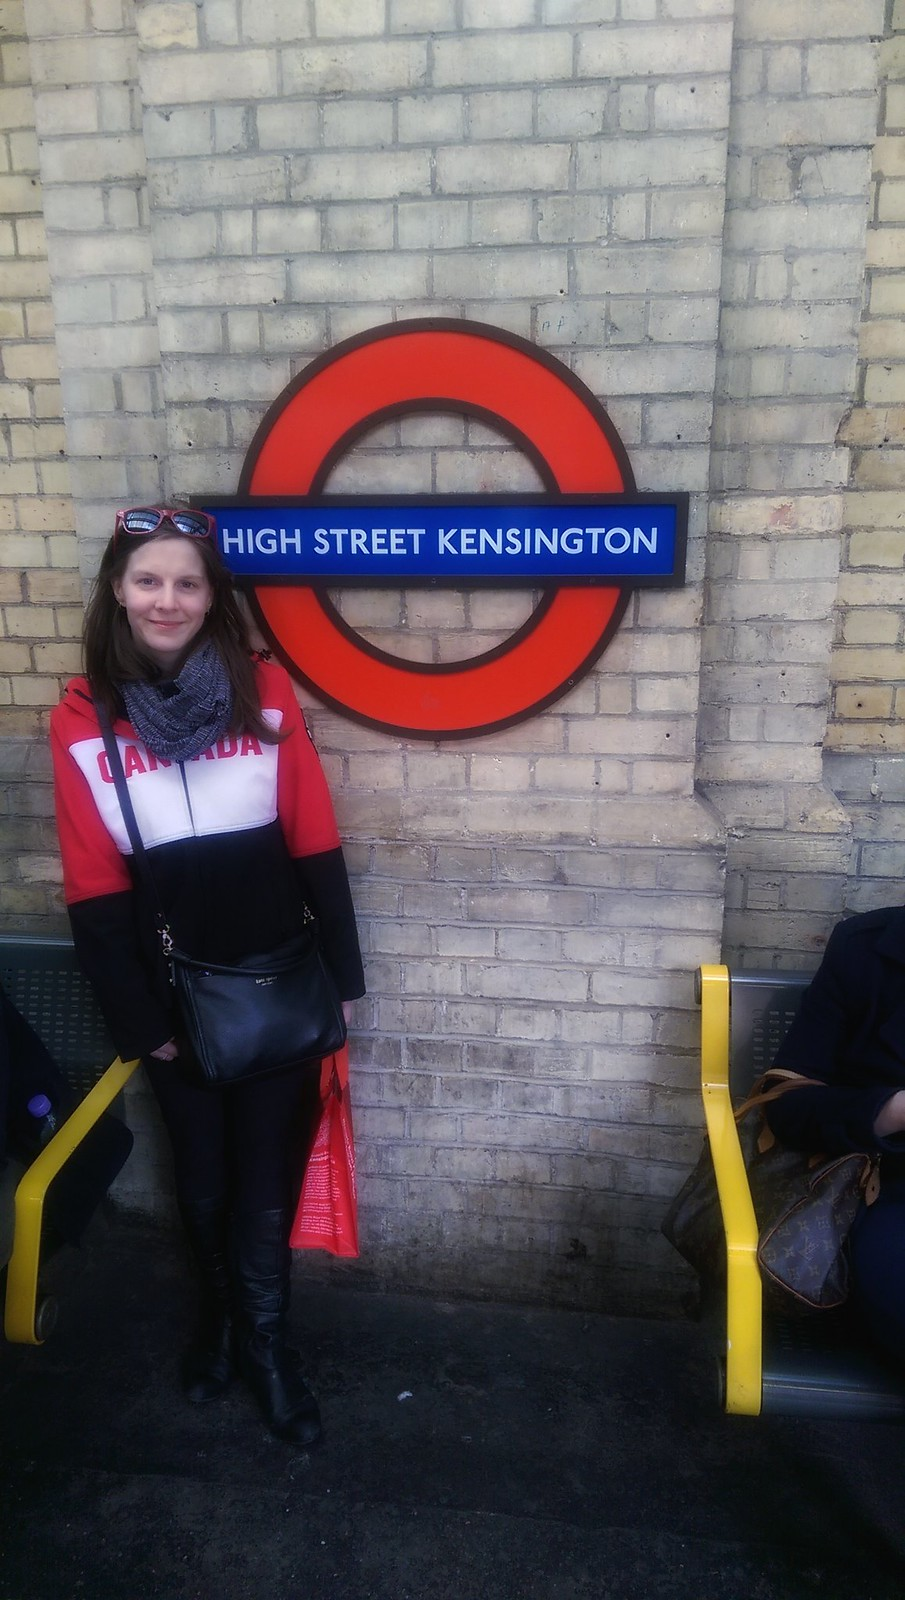 High Street Kensington Tube Stop-01